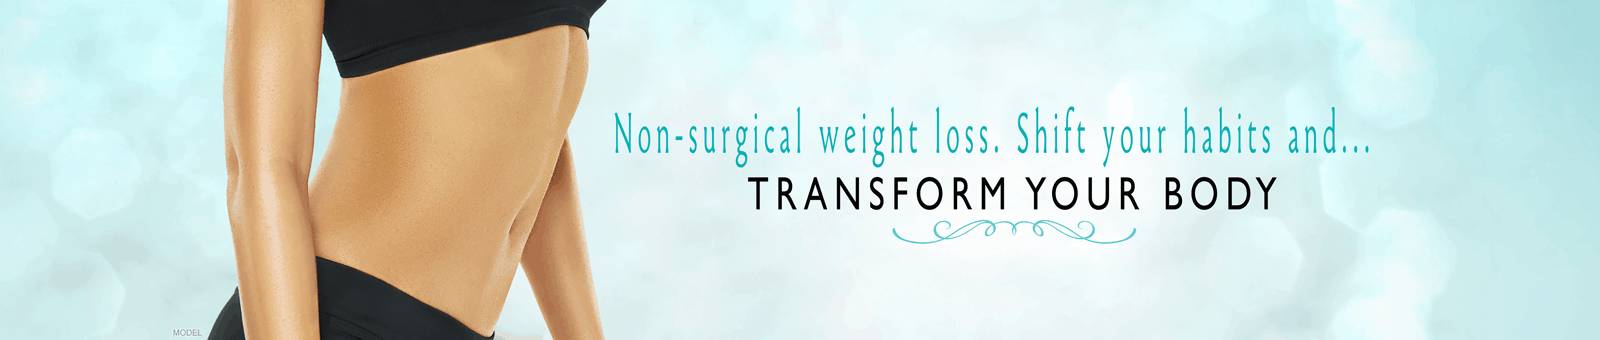 Gastric Weight Loss Balloon Program Experts in Atlanta, GA at Buckhead Plastic Surgery